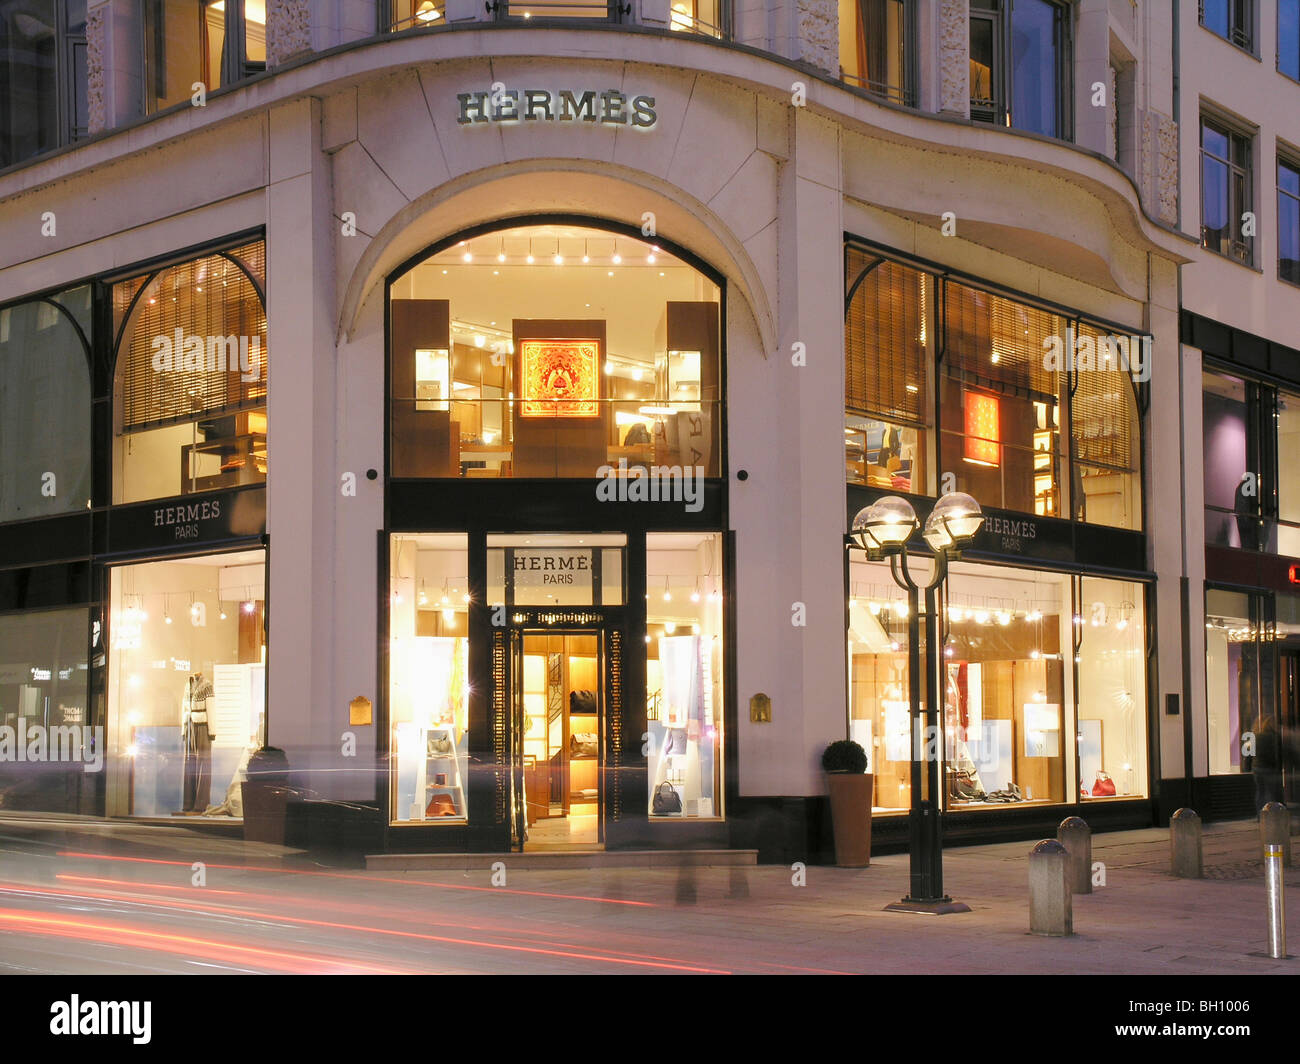 hermes store hanseatic city of hamburg germany stock. Black Bedroom Furniture Sets. Home Design Ideas